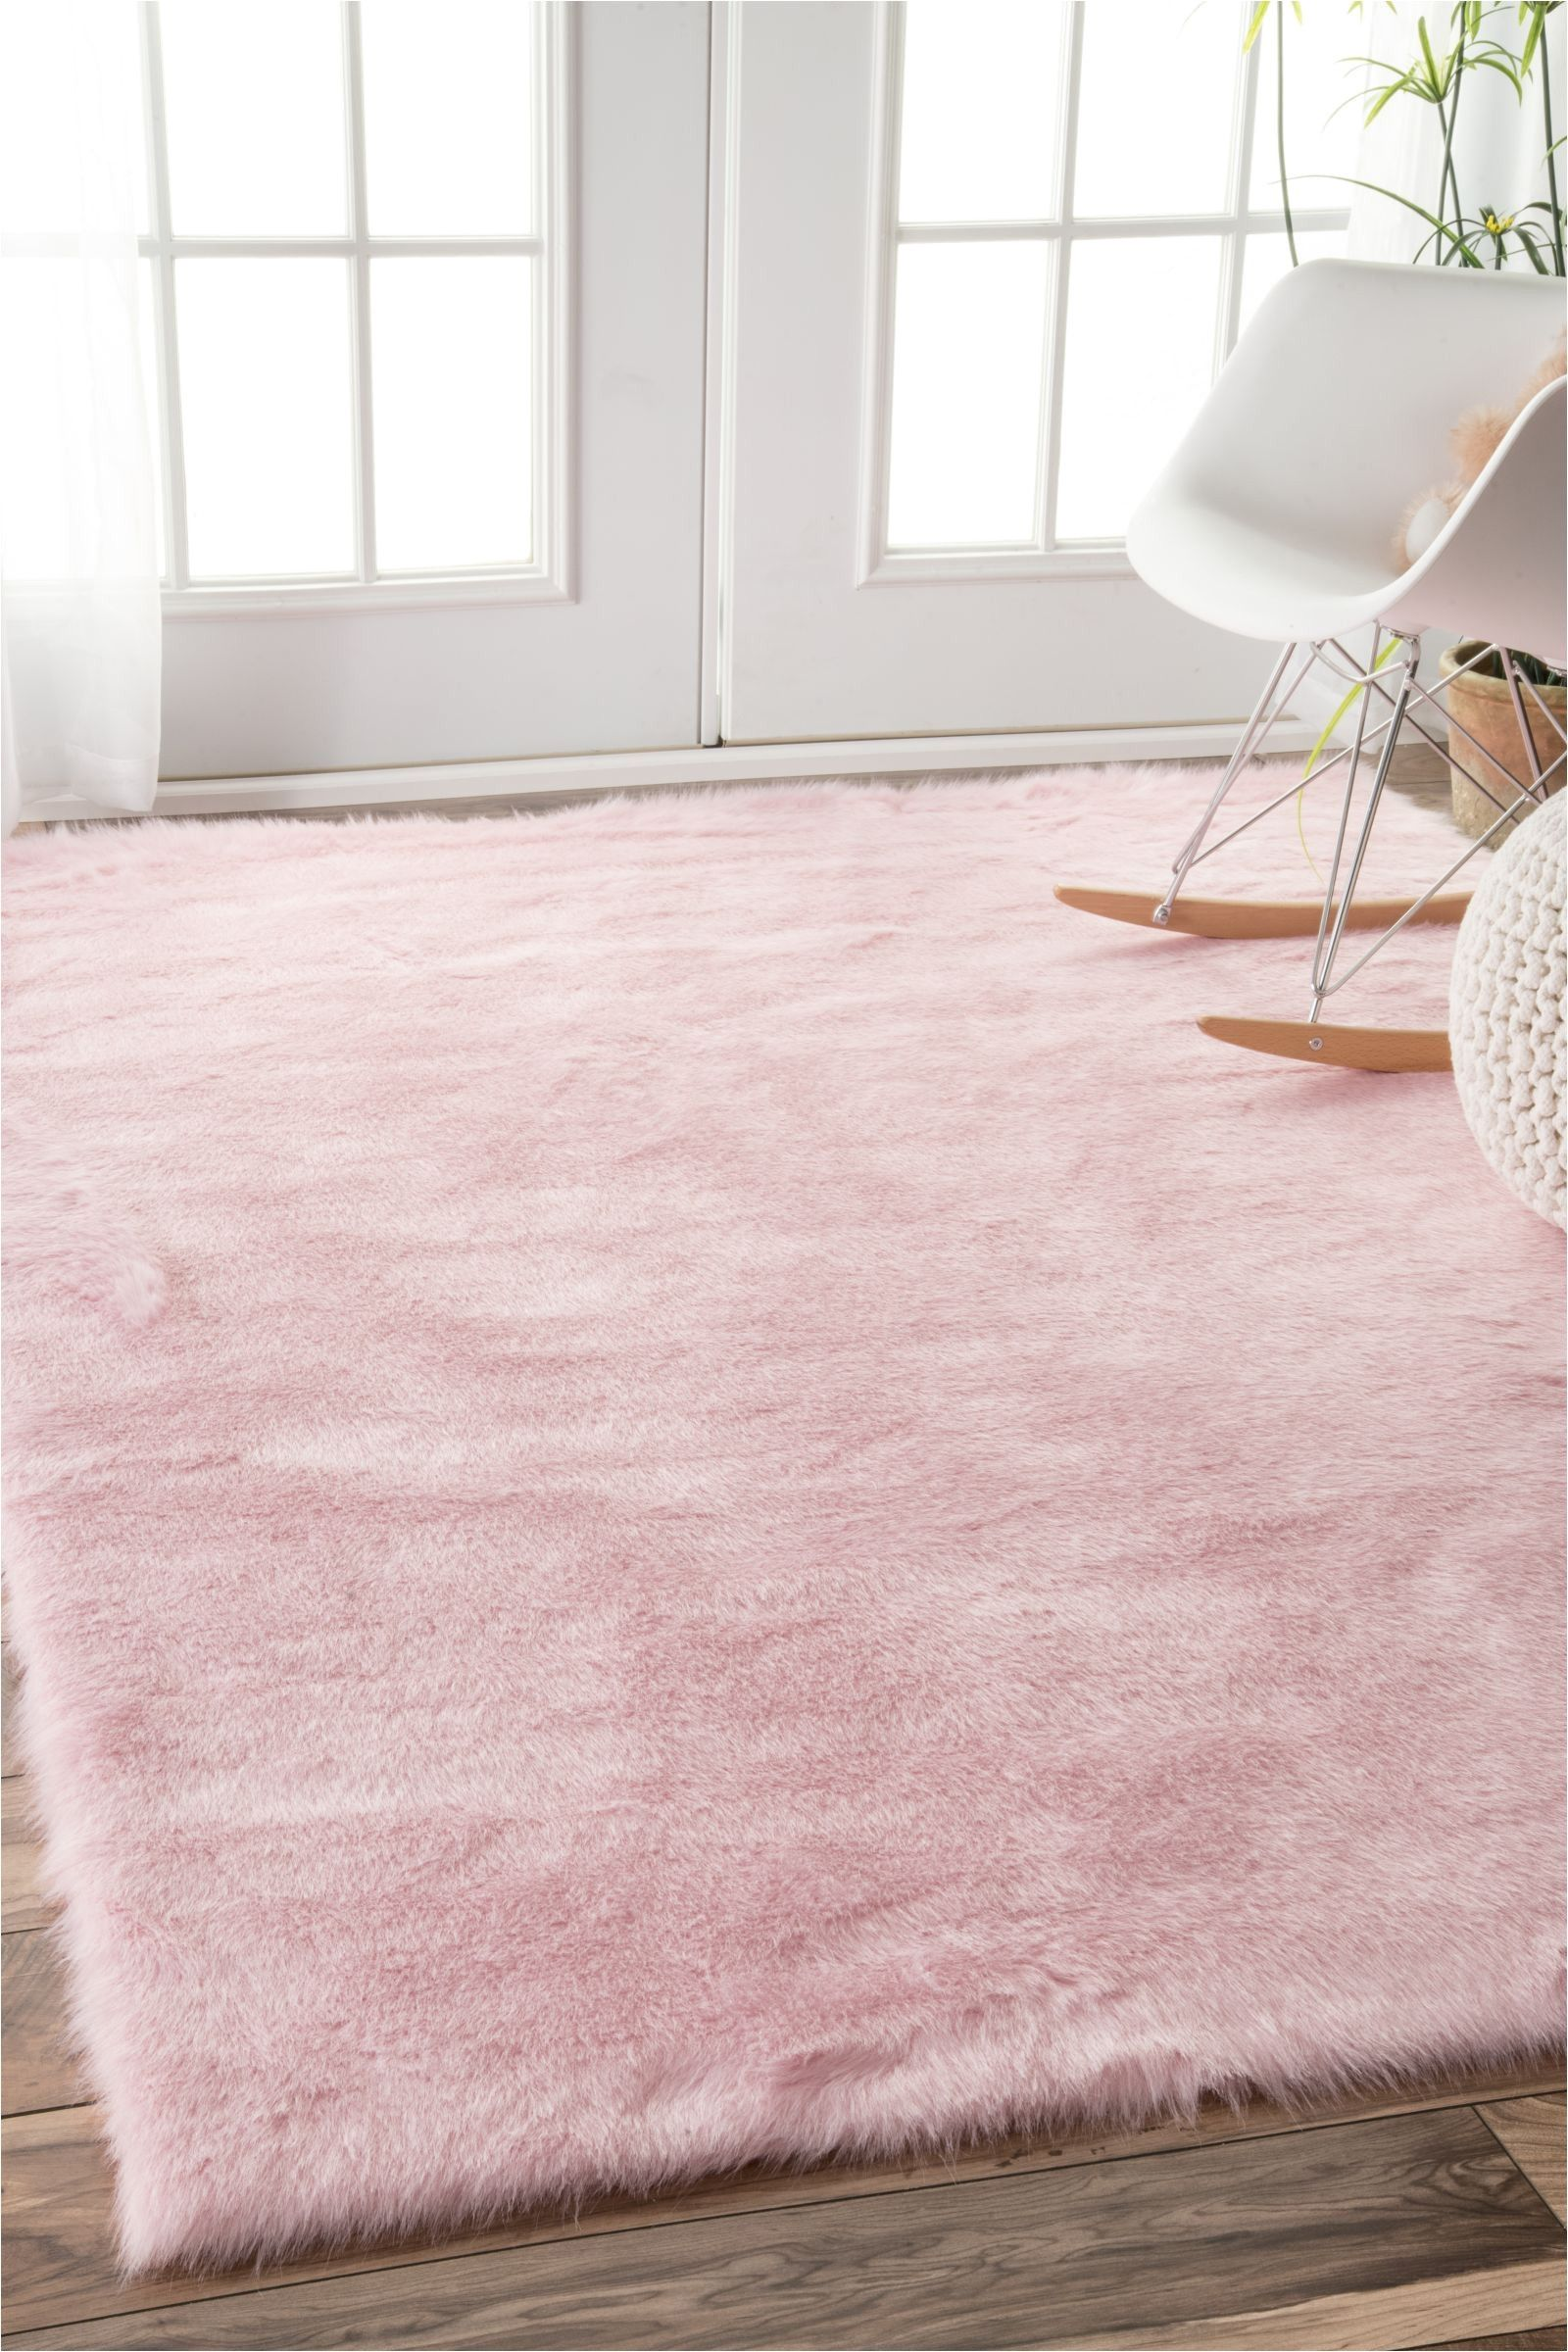 30 Magnificent Lavender Area Rug